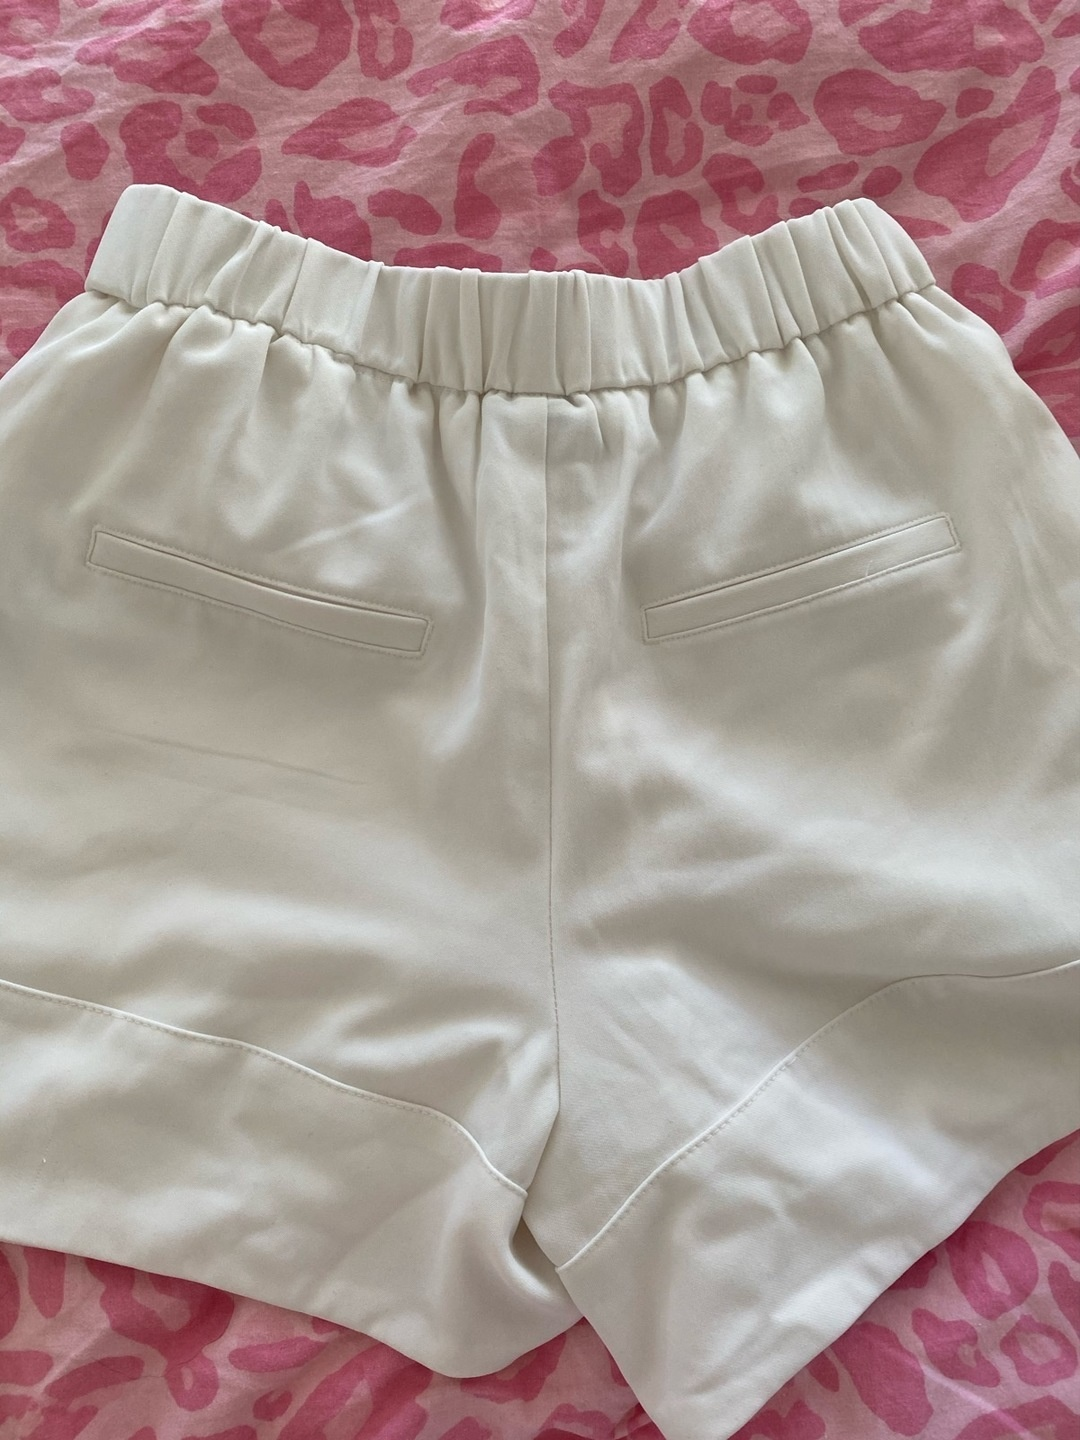 Women's shorts - GINA TRICOT photo 2